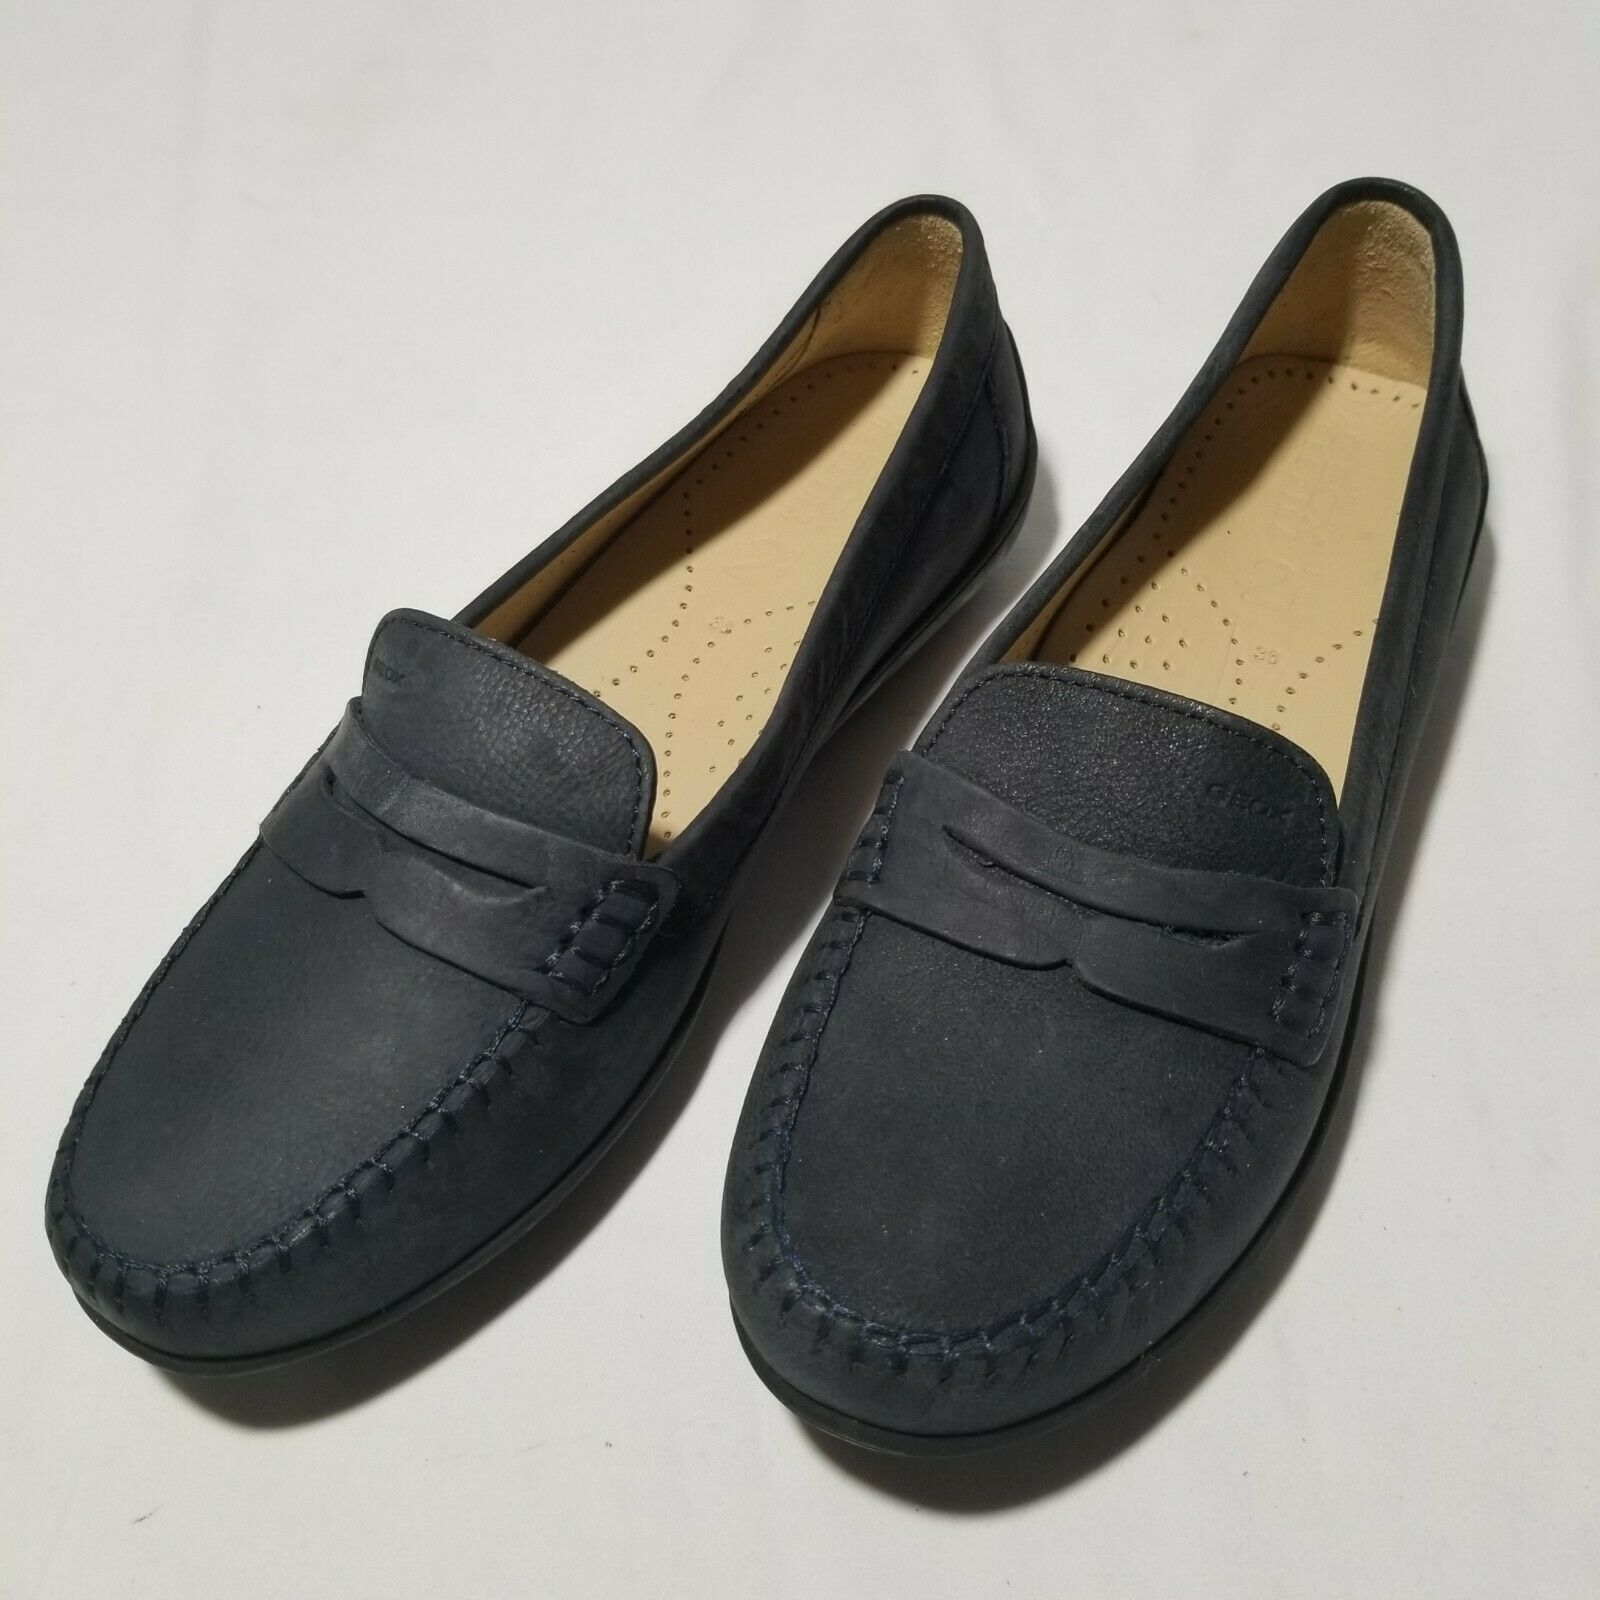 Geox Respira Women's Black 2 fittings italian patent Slip On Loafer shoes EU 36